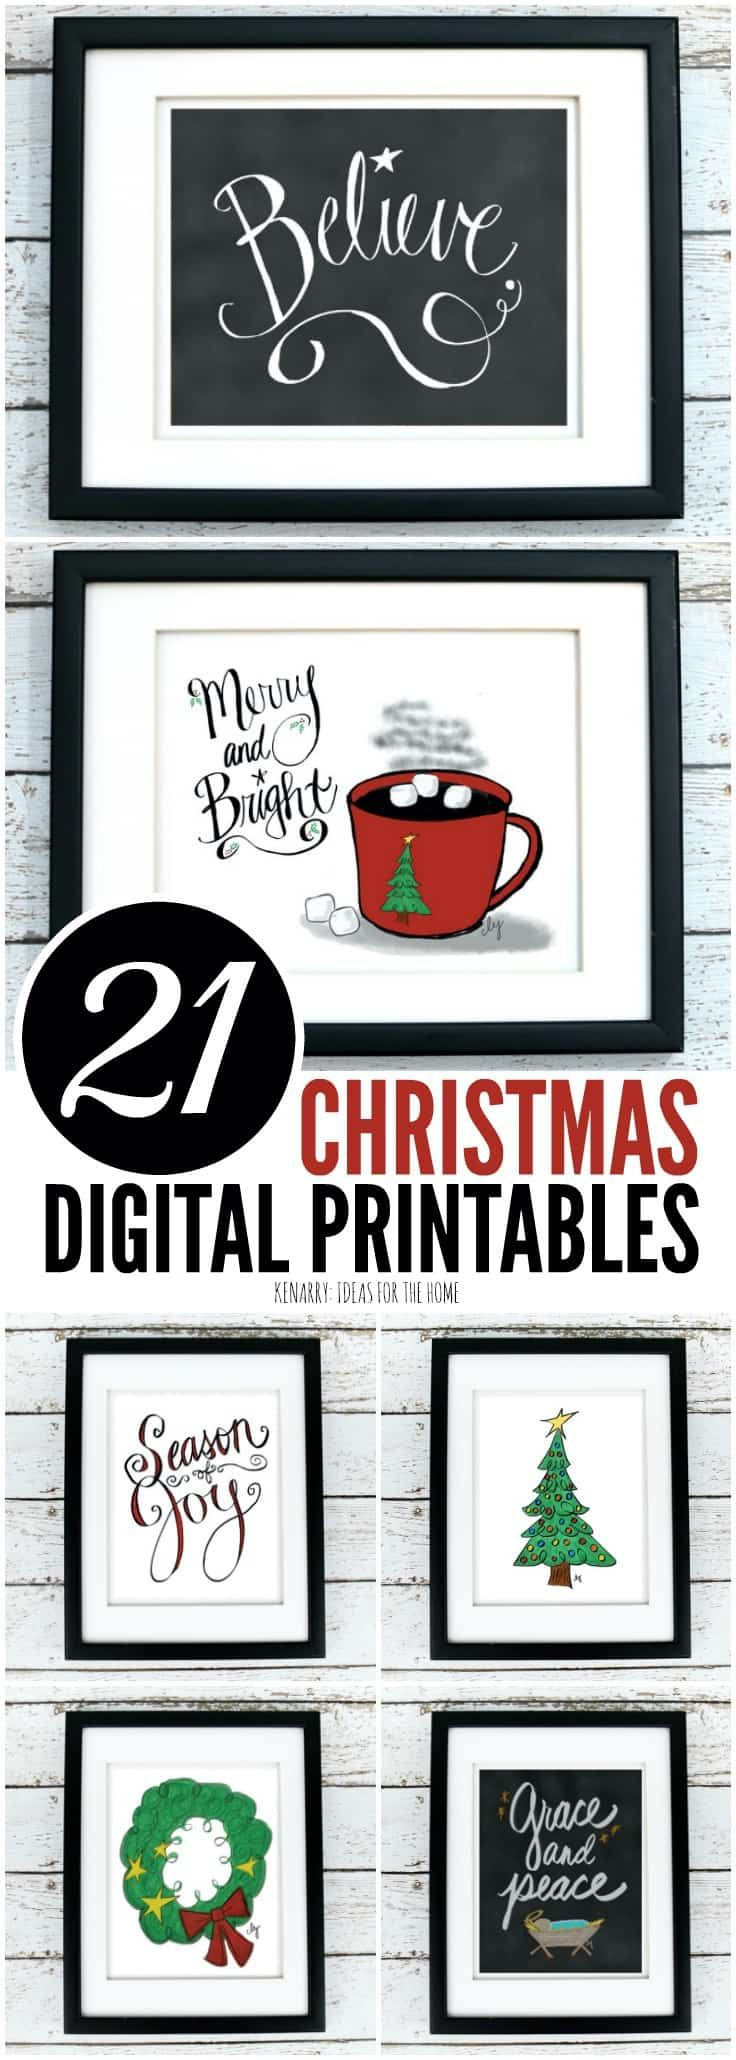 The Christmas printables collection from Kenarry: Ideas for the Home is available as digital printable art on Etsy. Printables are a great way to decorate the walls of your home on a budget for Christmas and the holiday season.